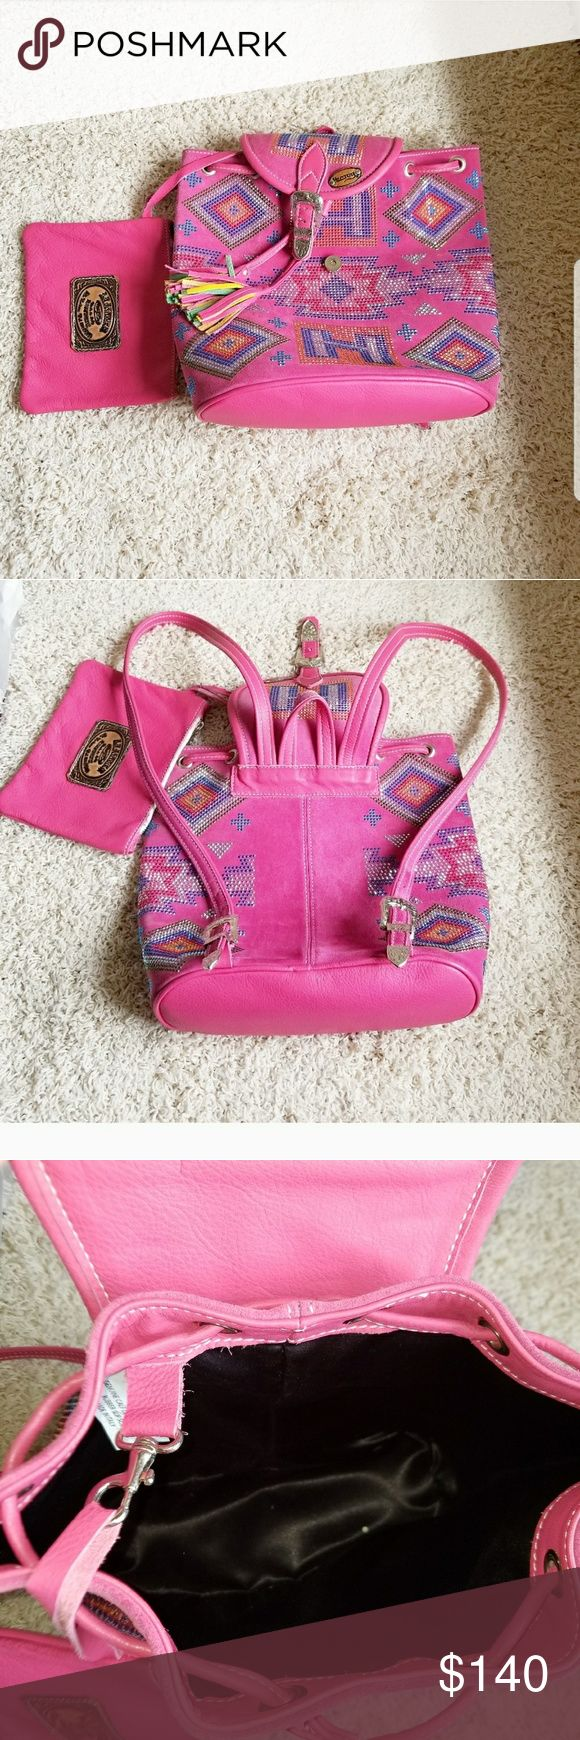 Leather Hector Riccione swarovski backpack Pink leather Hector Riccione backpack studded with swarovski crystals. It has a detachable clutch. Perfect condition. Got it from a boutique in Miami but never used it. Hector Riccione Bags Backpacks